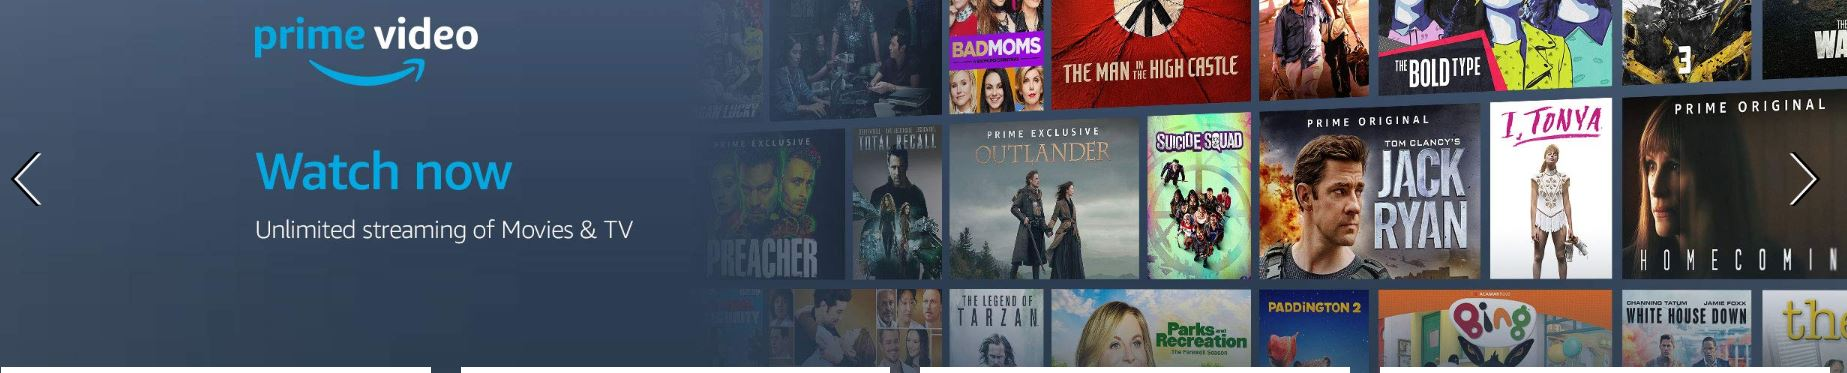 Movies and TV shows on Amazon Prime